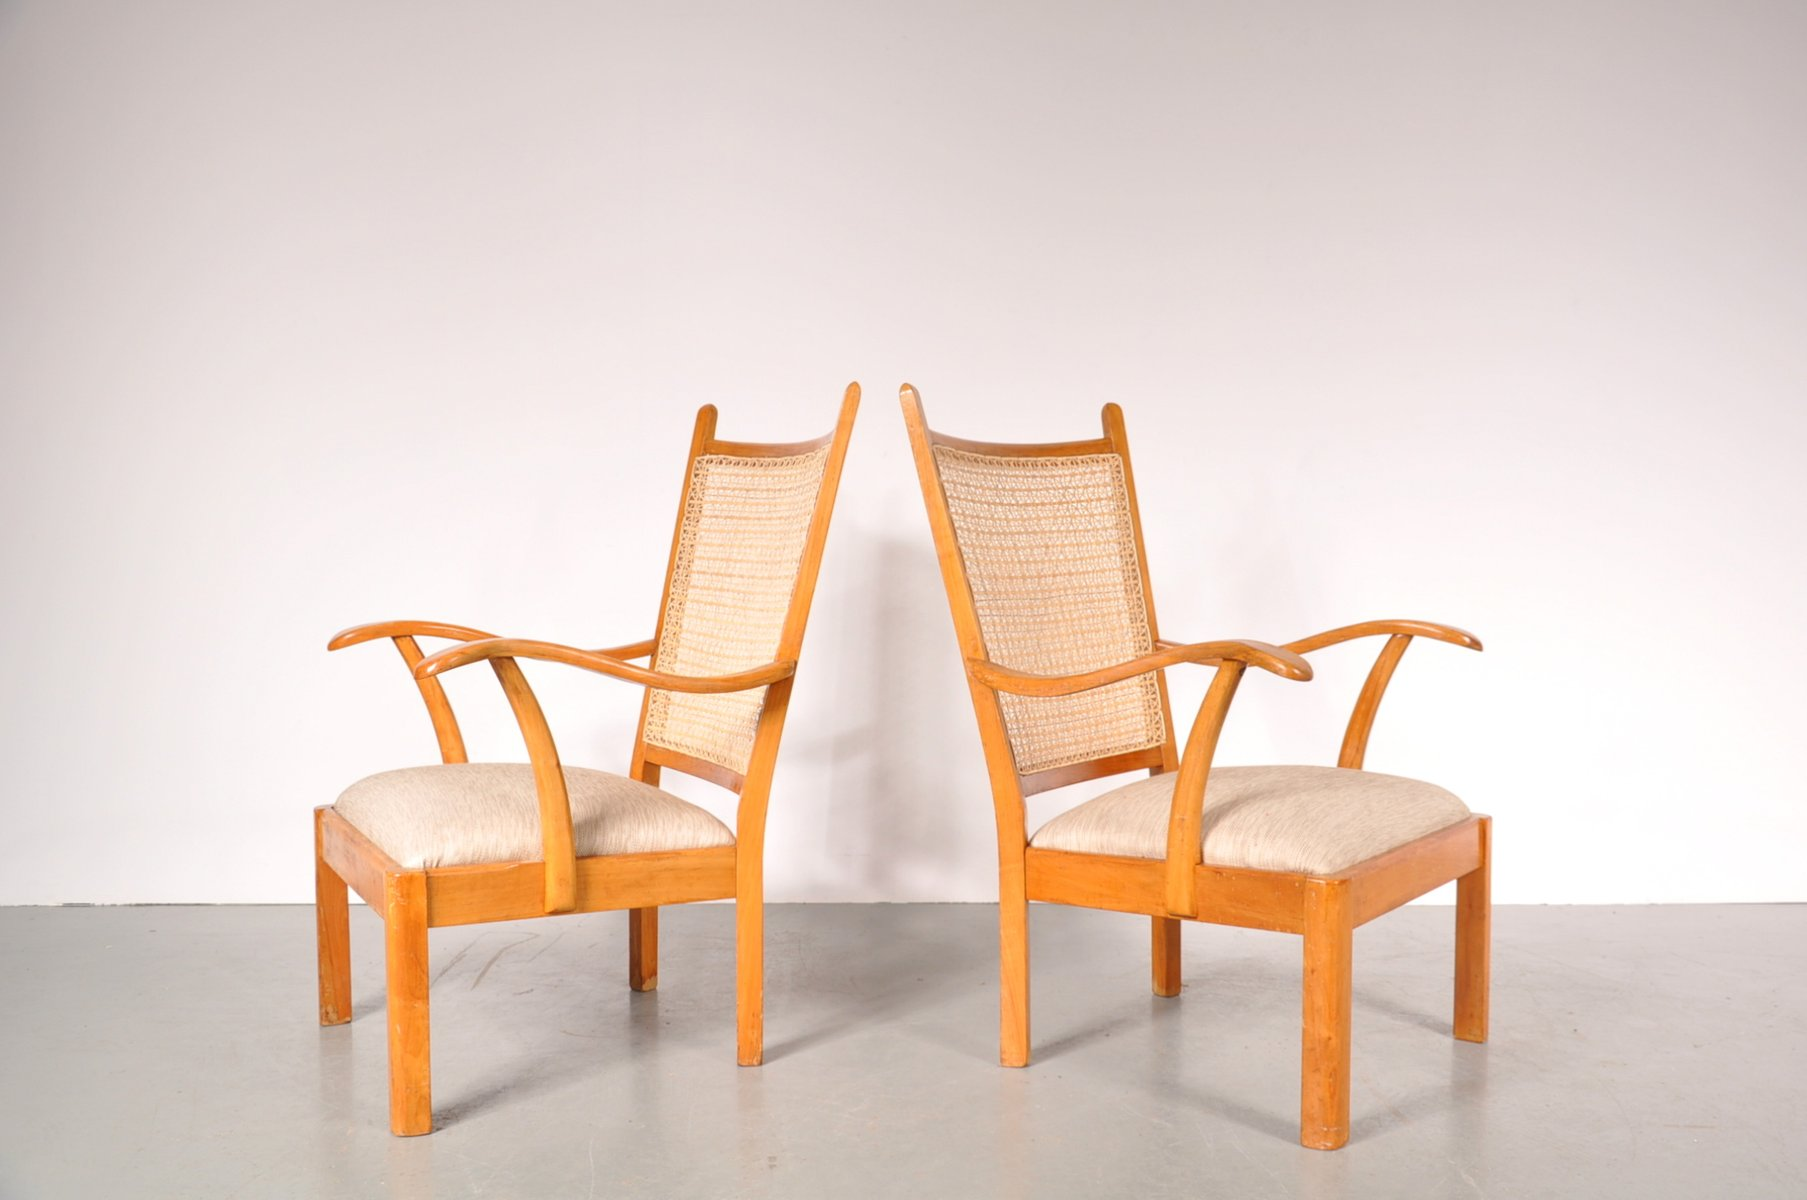 Beechwood easy chairs by bas van pelt for my home 1940s set of 2